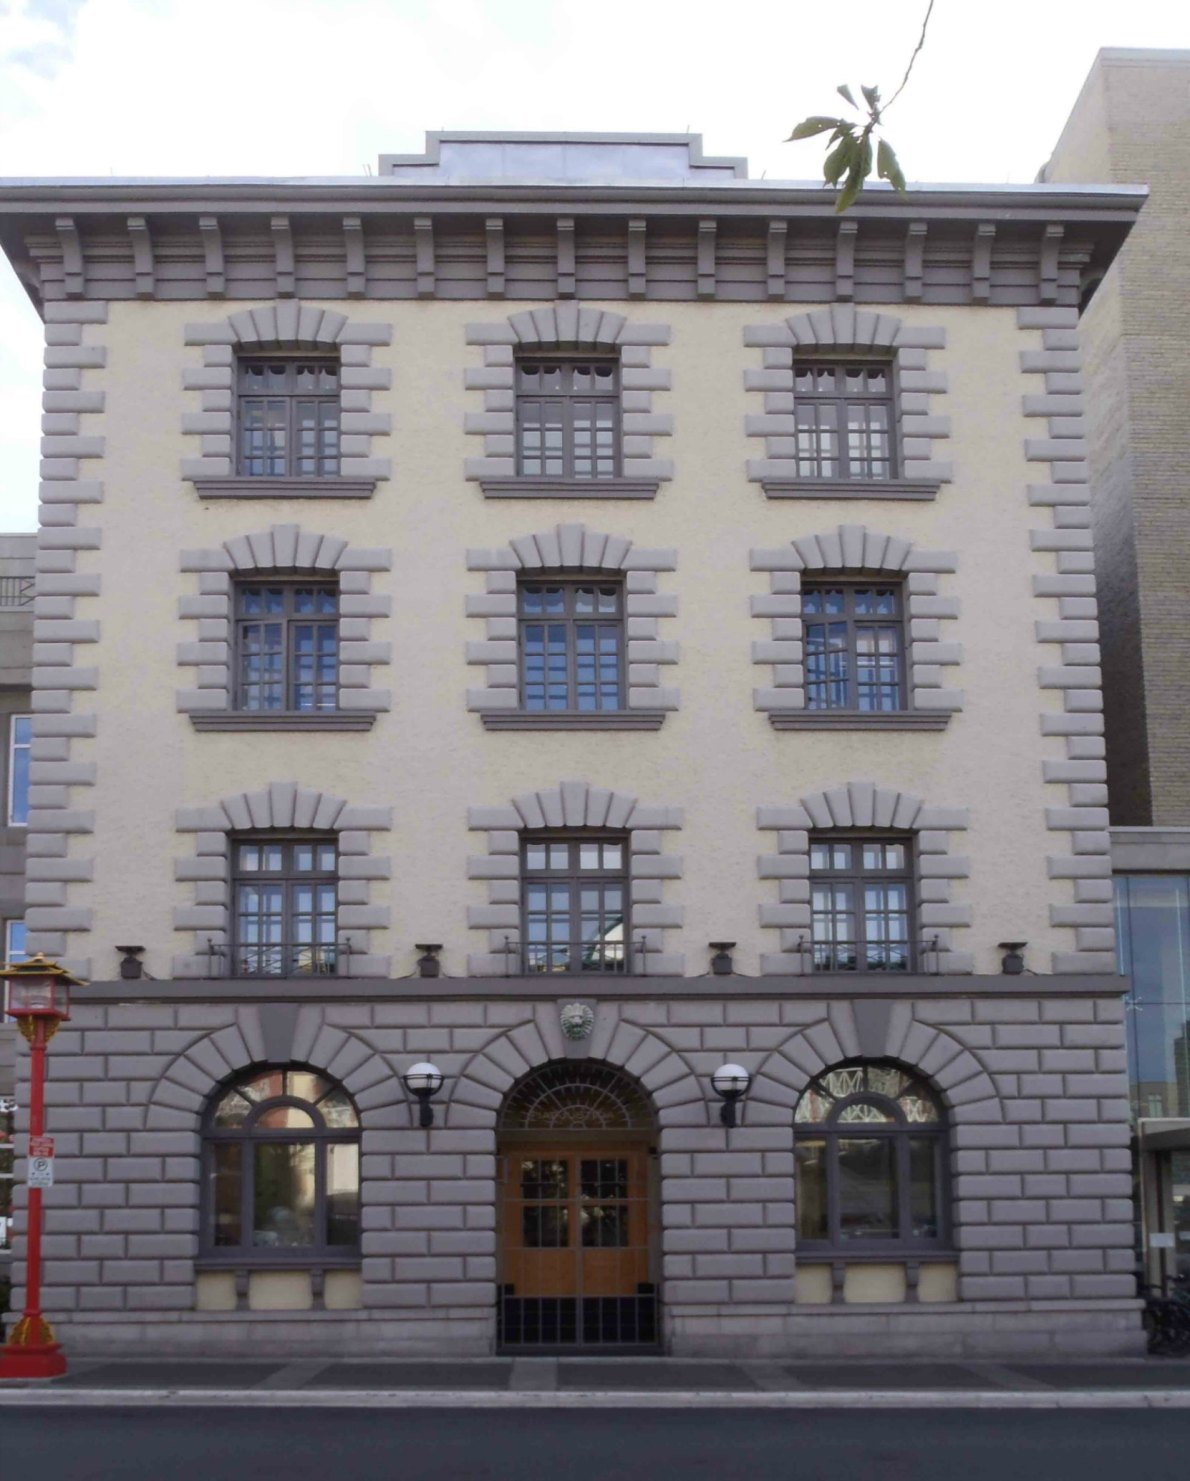 The facade of the former Victoria Police Headquarters building, formerly at 625 Fisgard Street